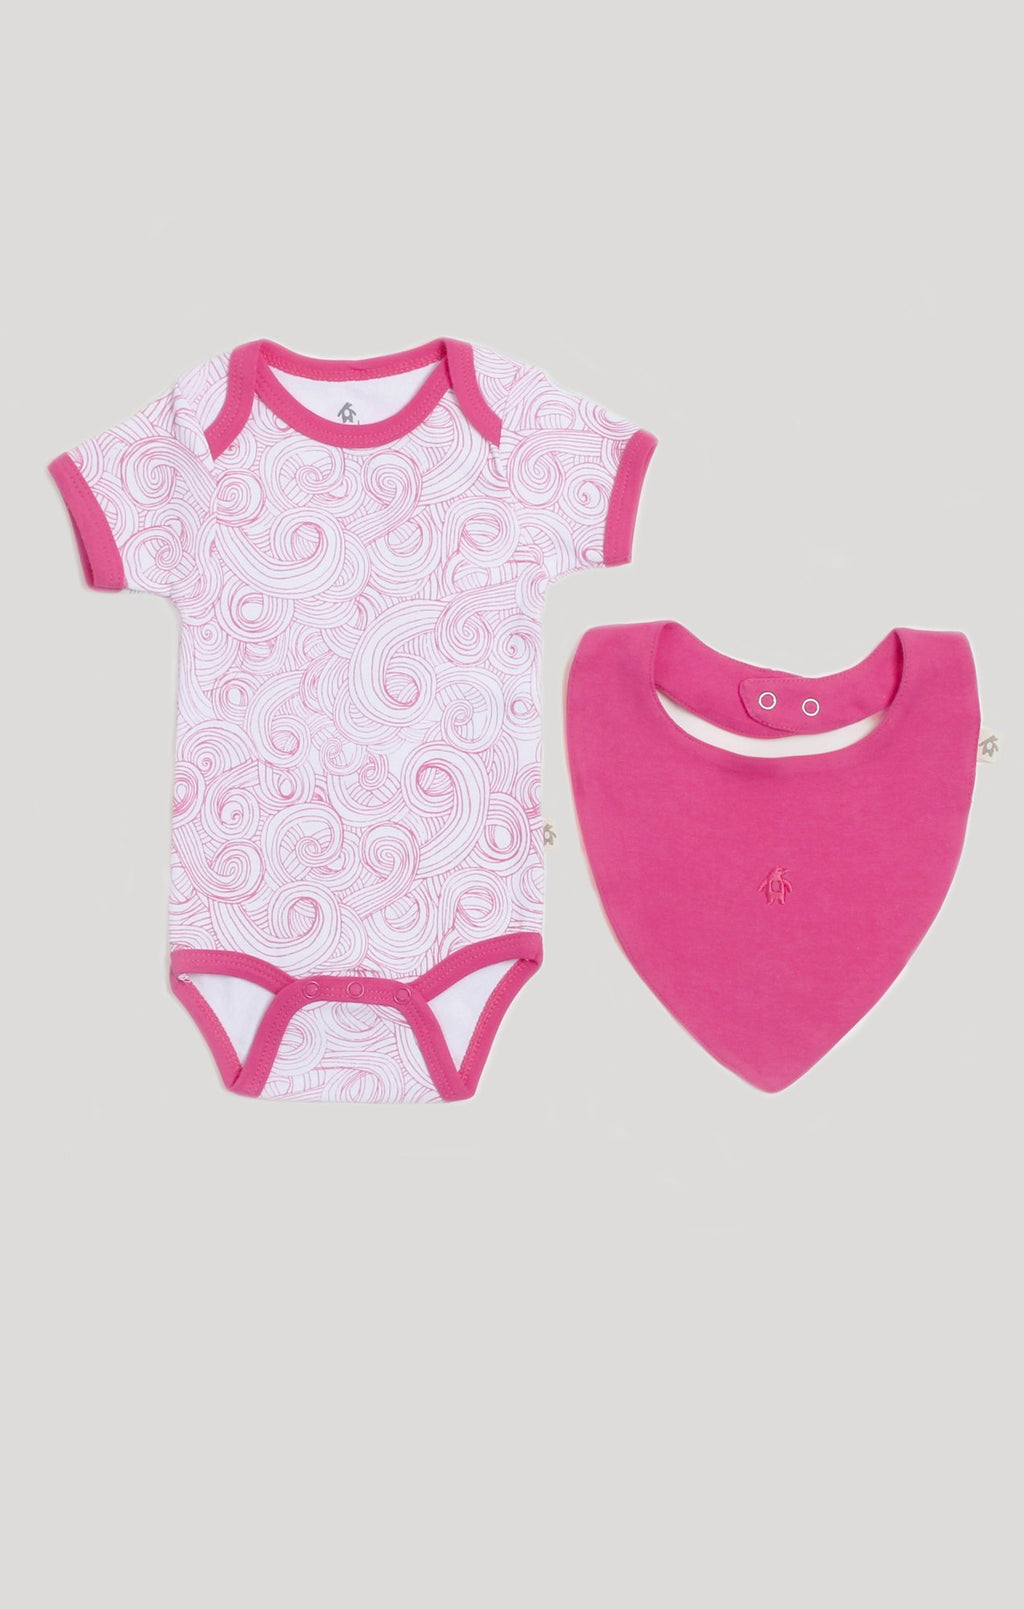 Pink Swirls Body Suit & Bib Set